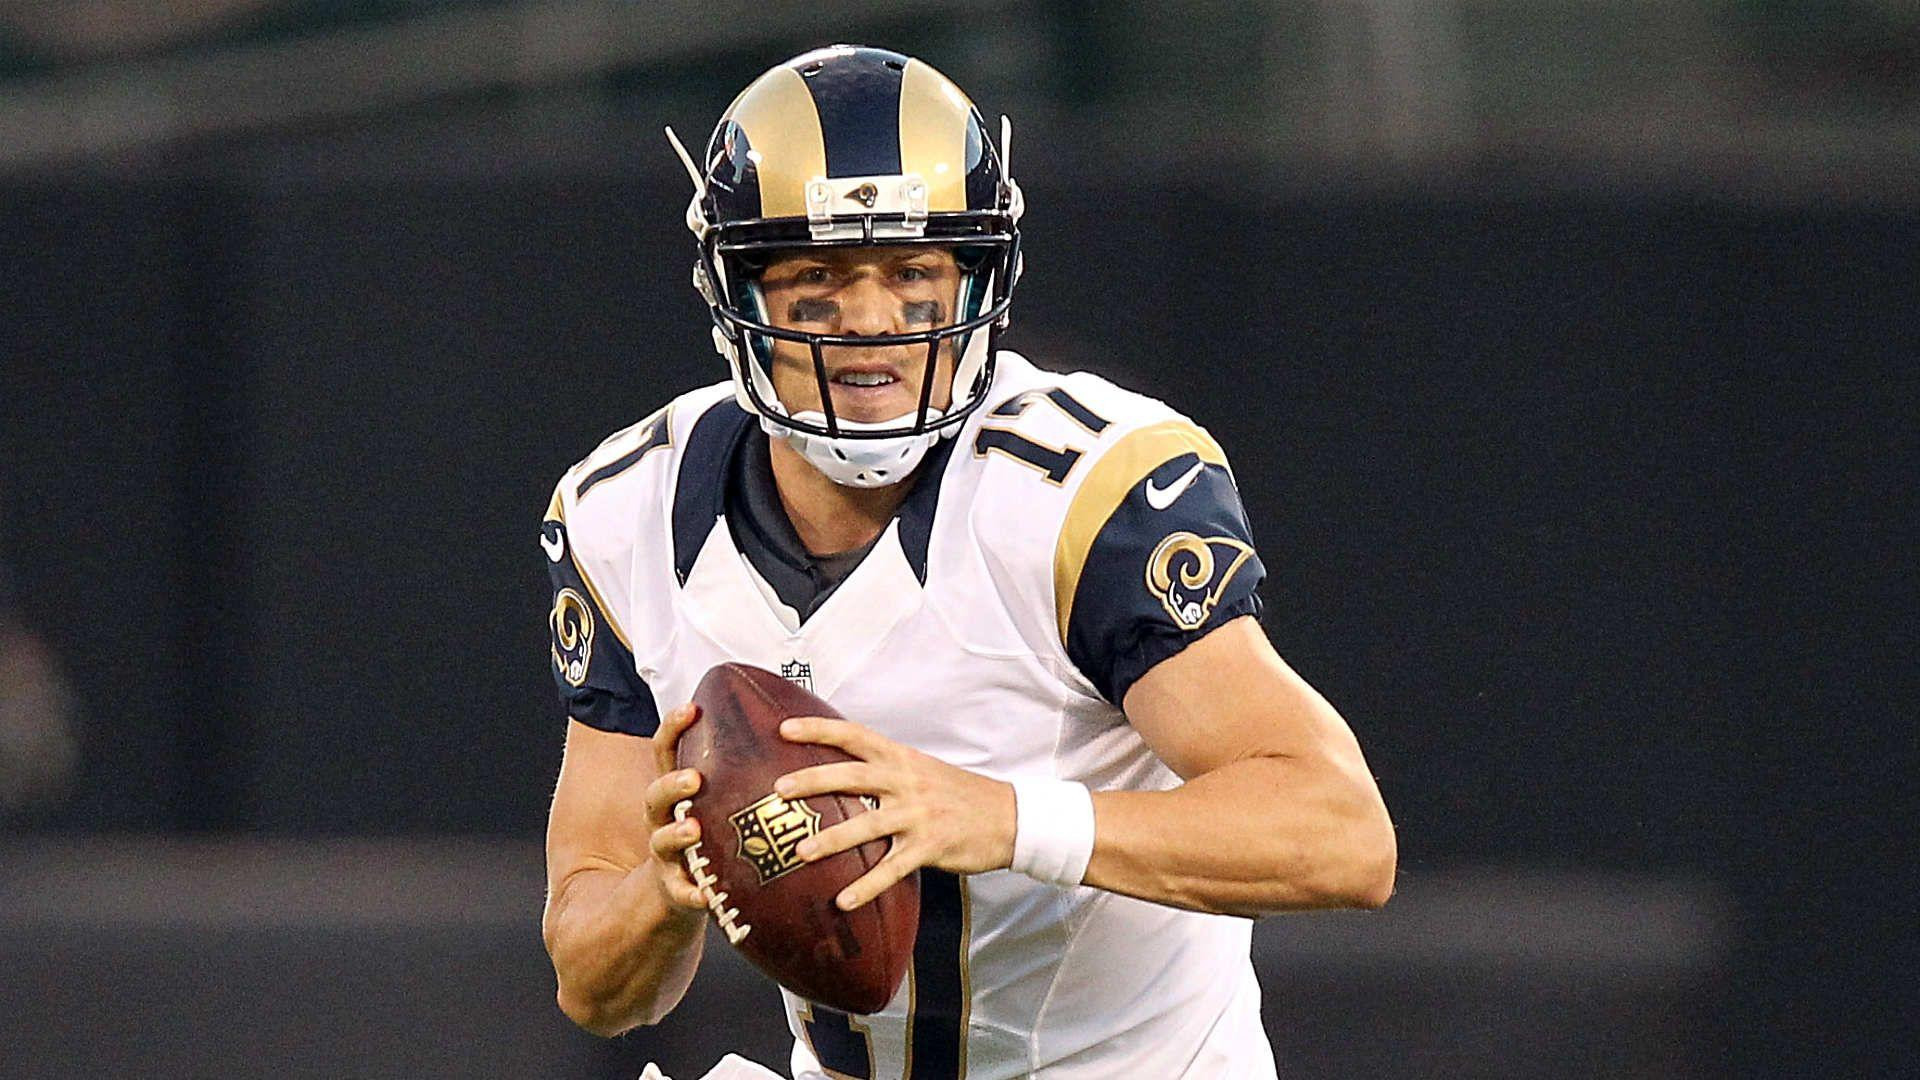 Rams bench Nick Foles, will start Case Keenum at QB against Ravens